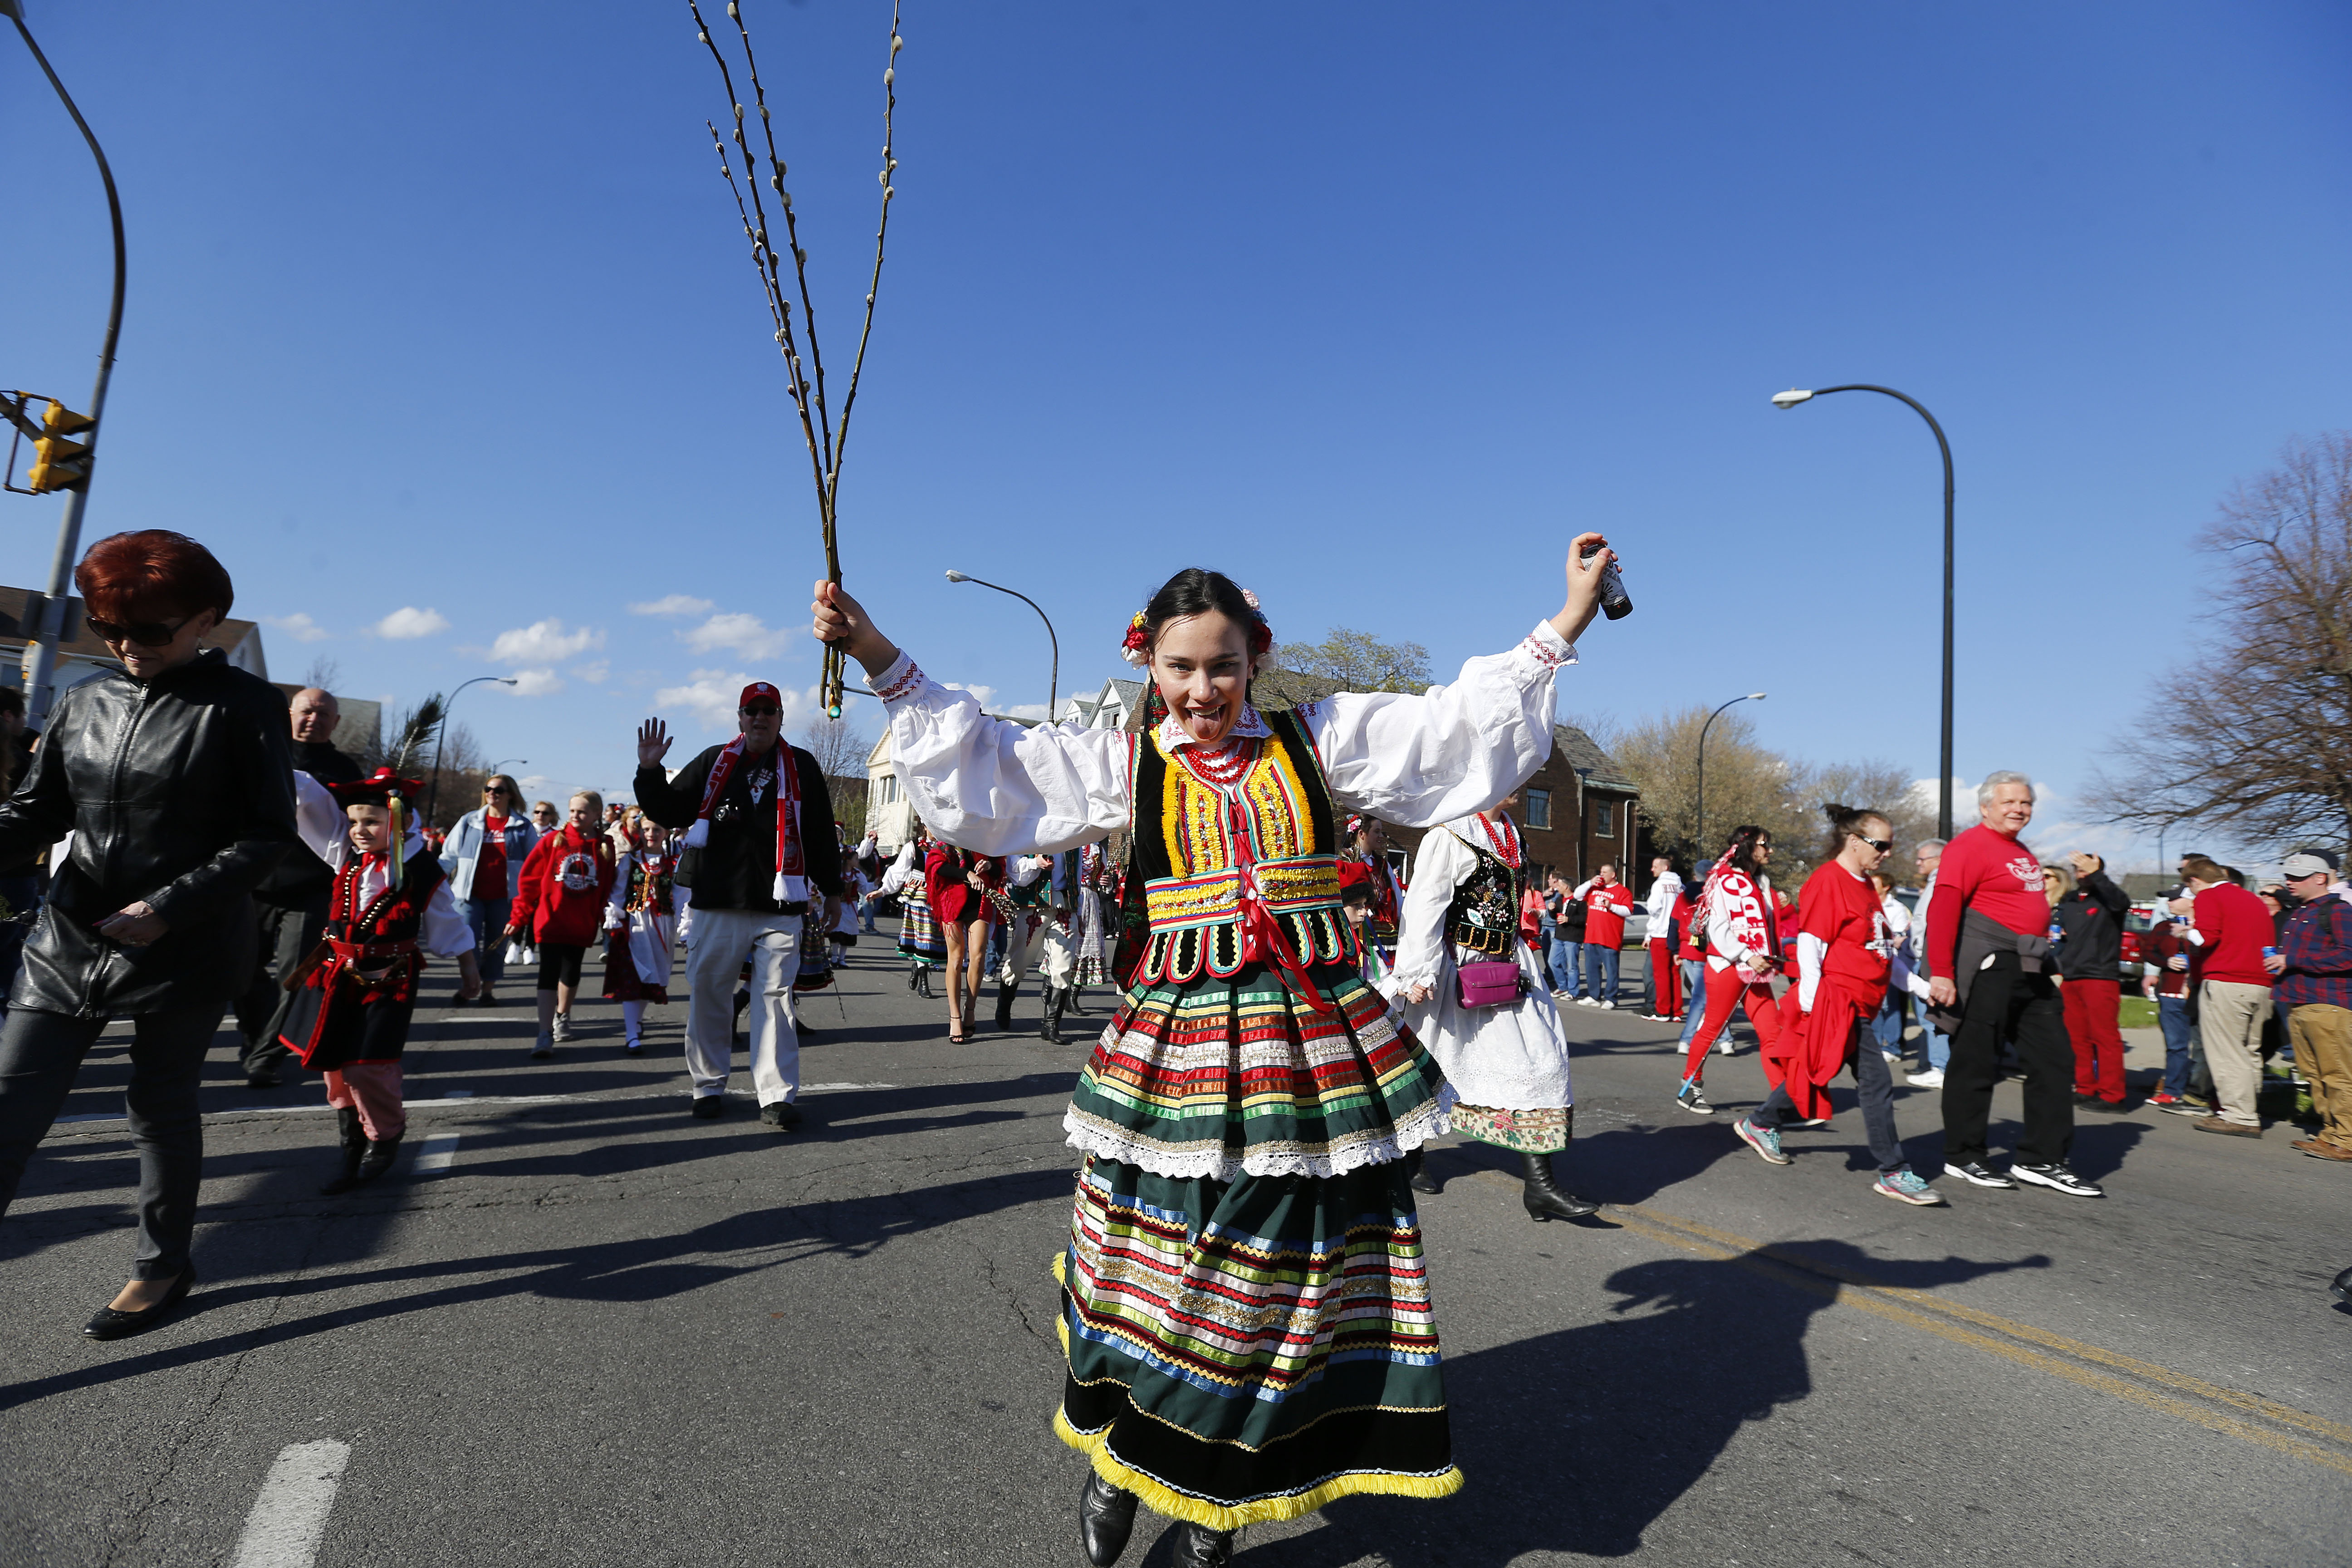 Marchers walk down Fillmore Avenue during the Dyngus Day parade in Buffalo on Monday, April 17, 2017.         (Mark Mulville/Buffalo News)